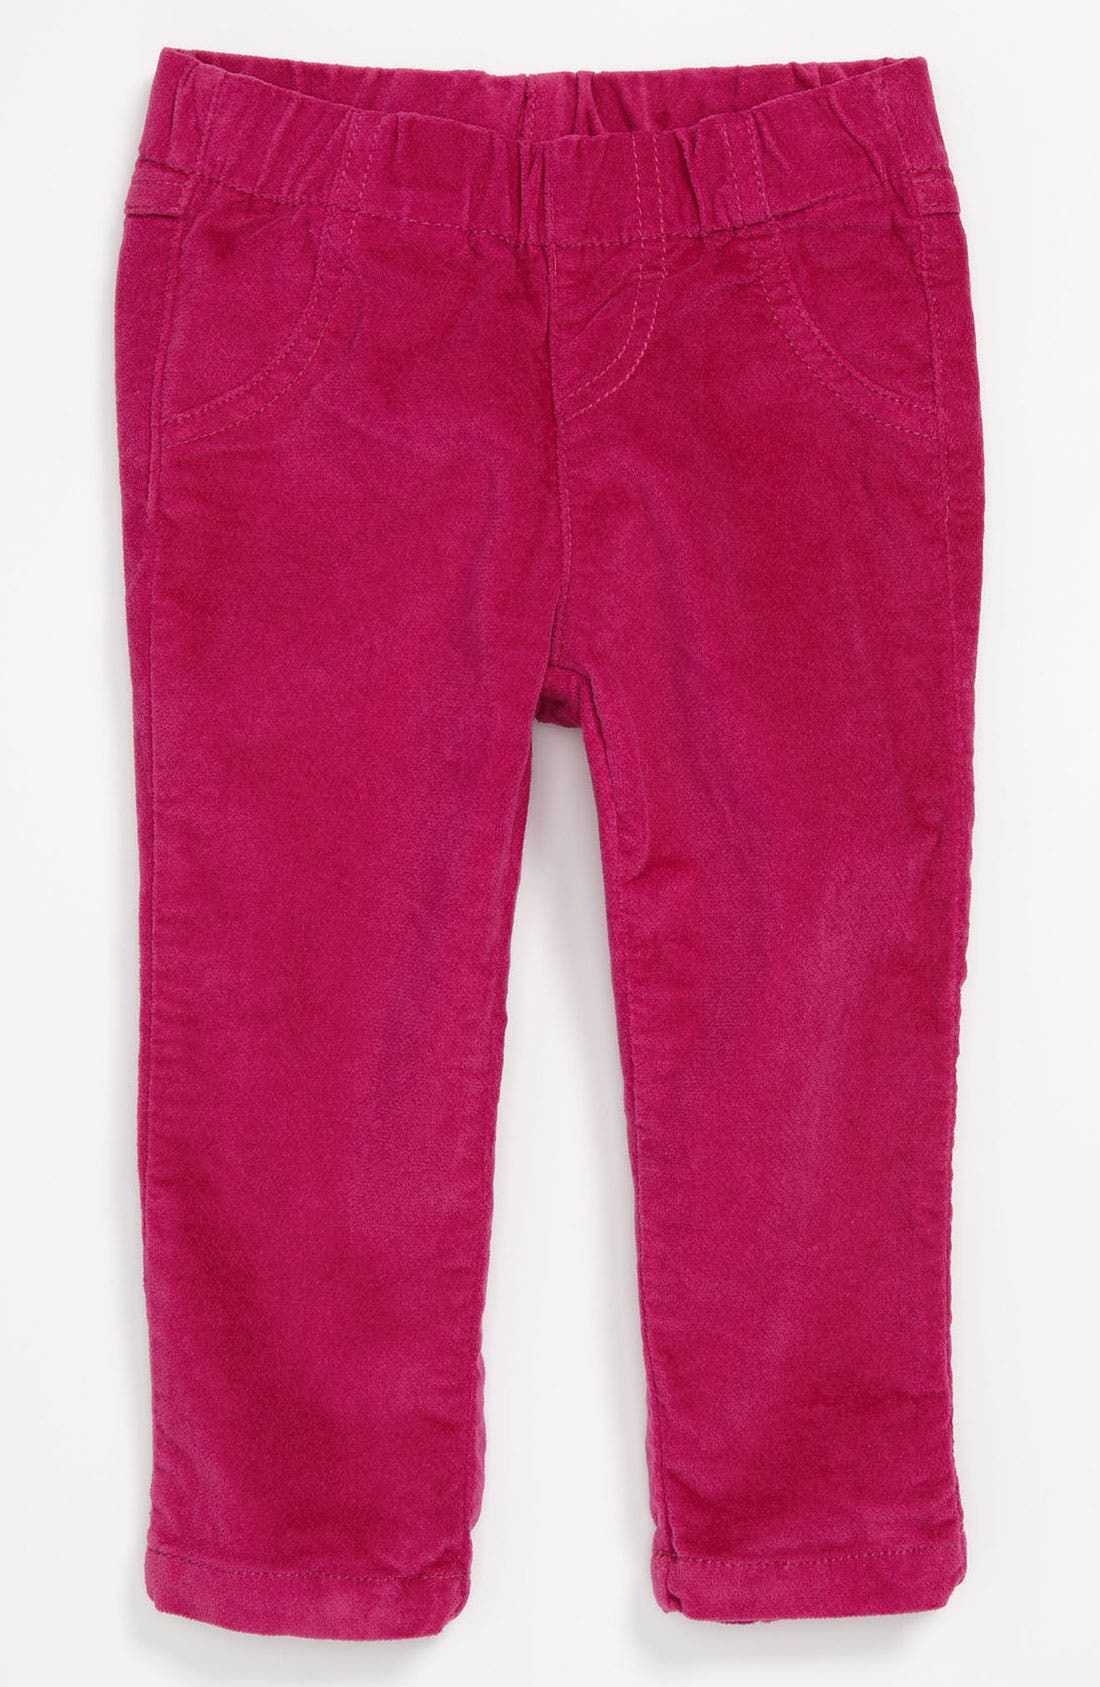 Main Image - United Colors of Benetton Kids Velvet Pants (Infant)